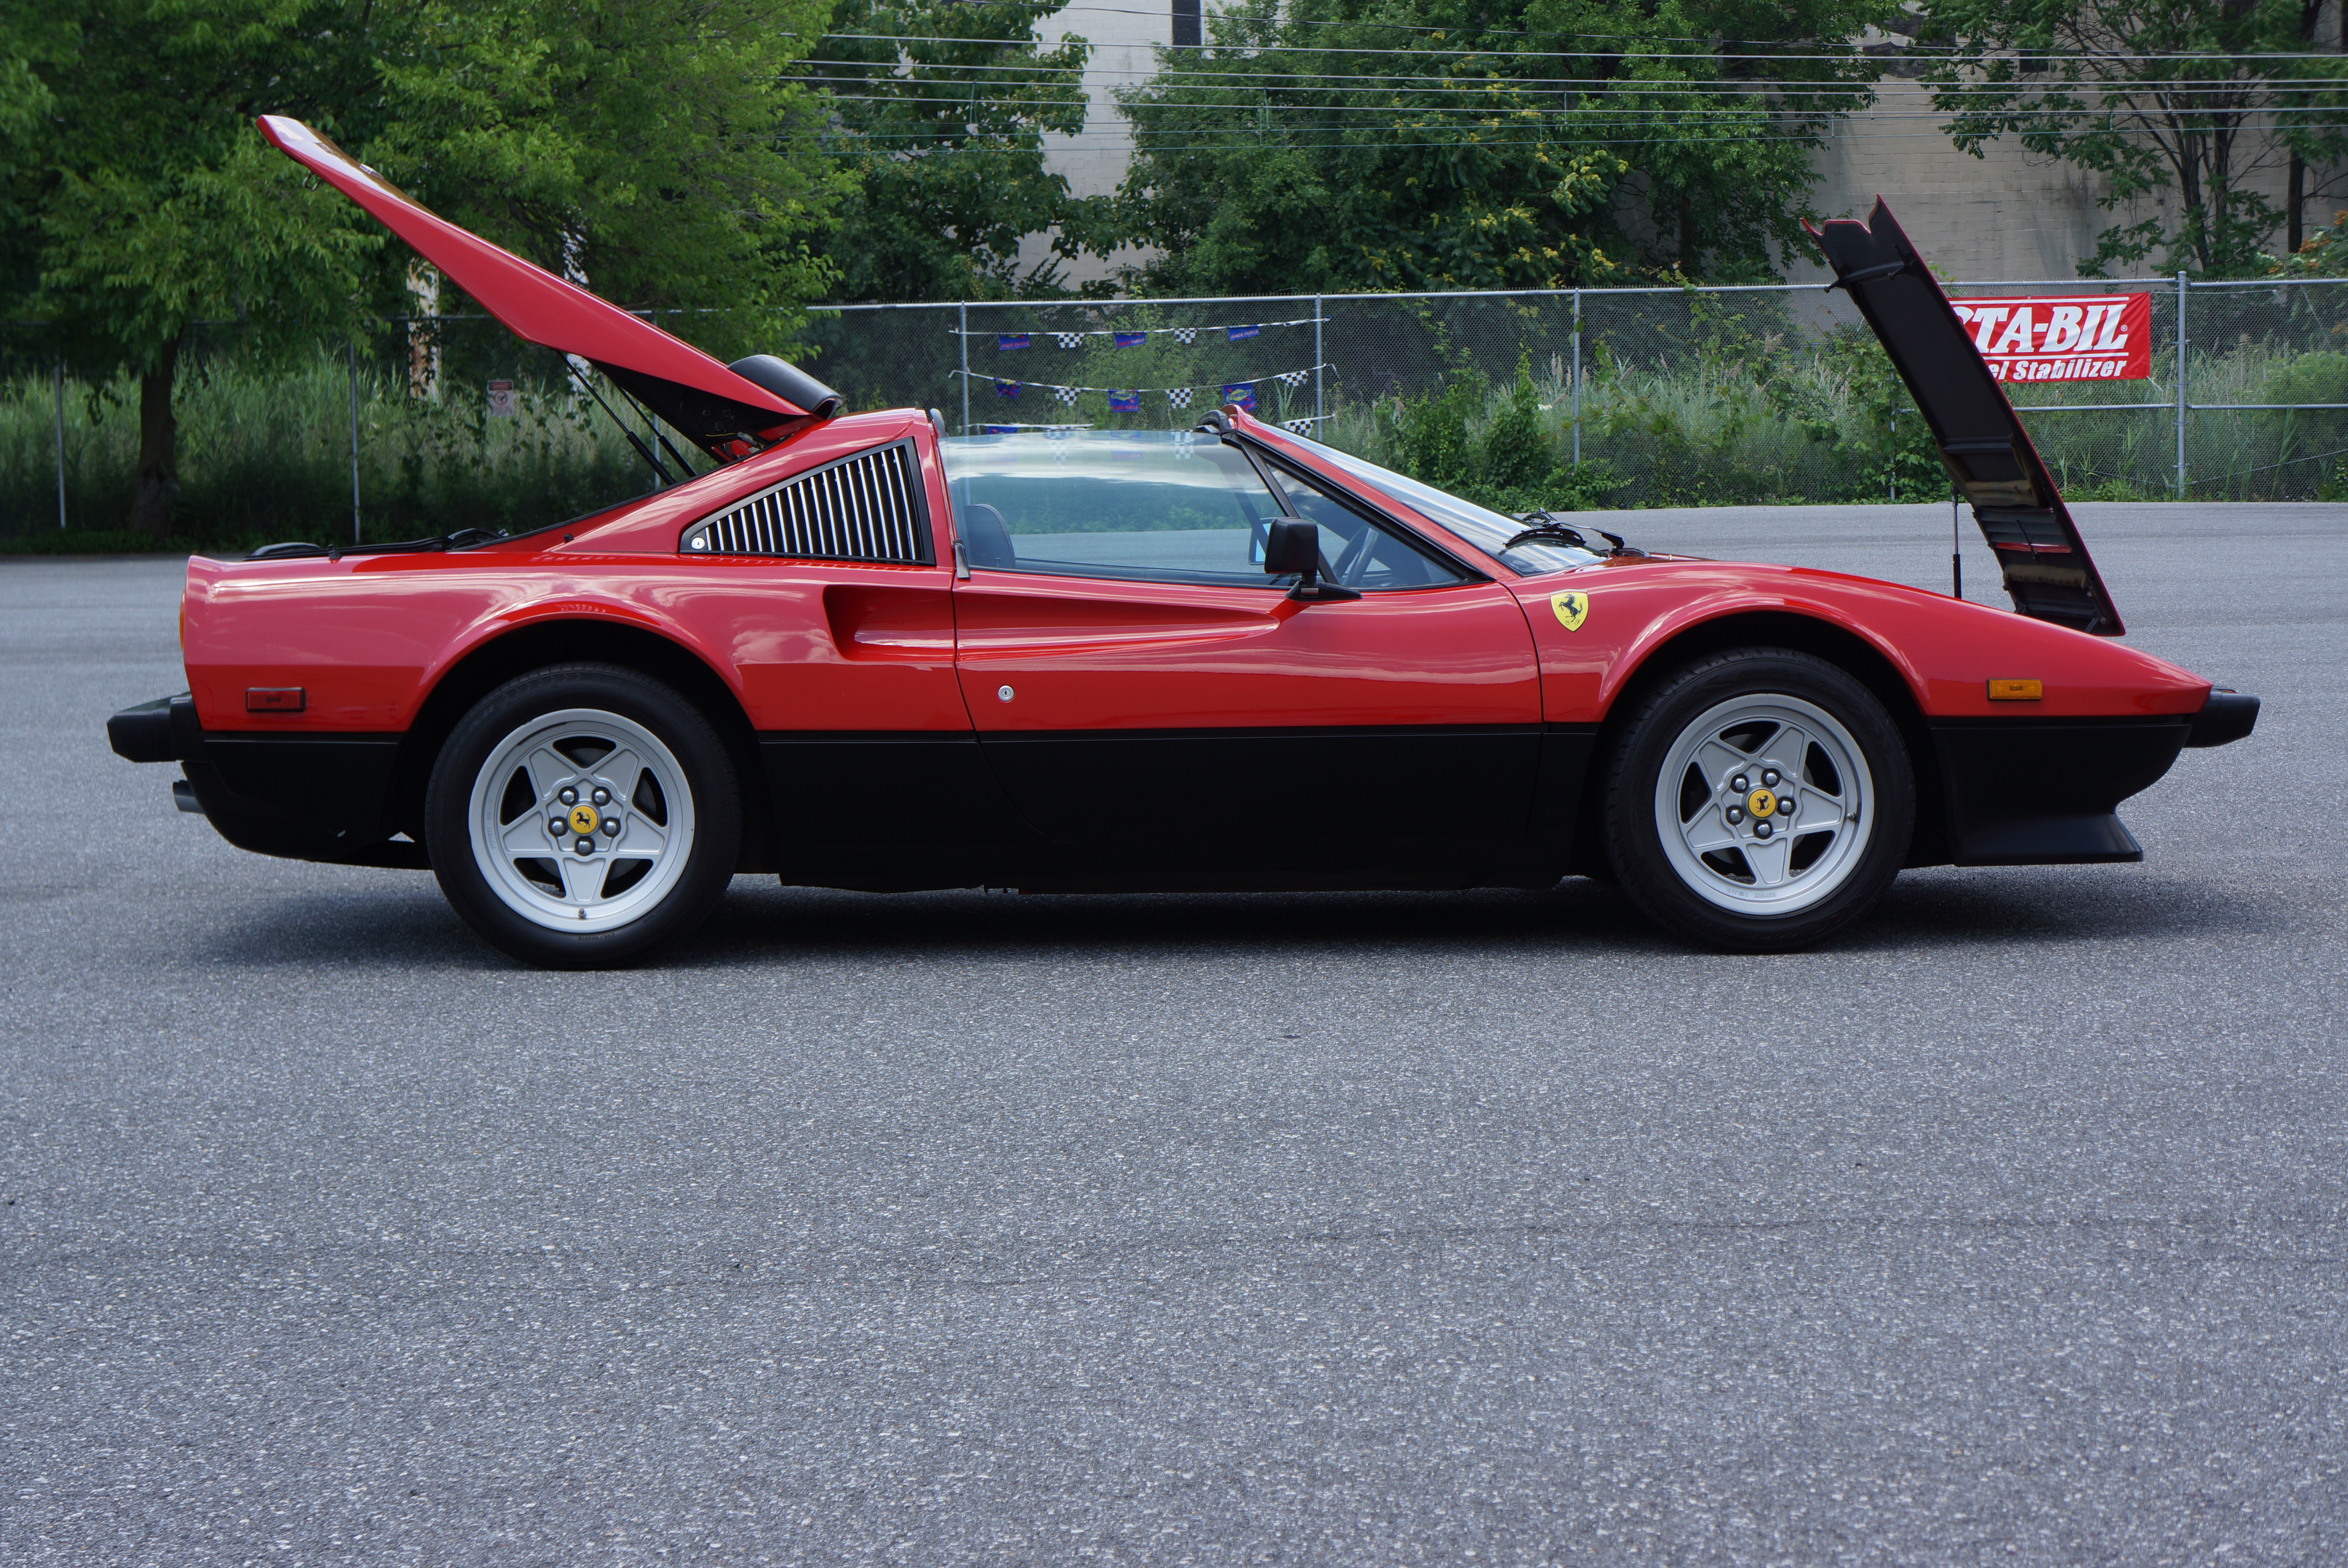 While not a V12, 308 is stunning '70s shape